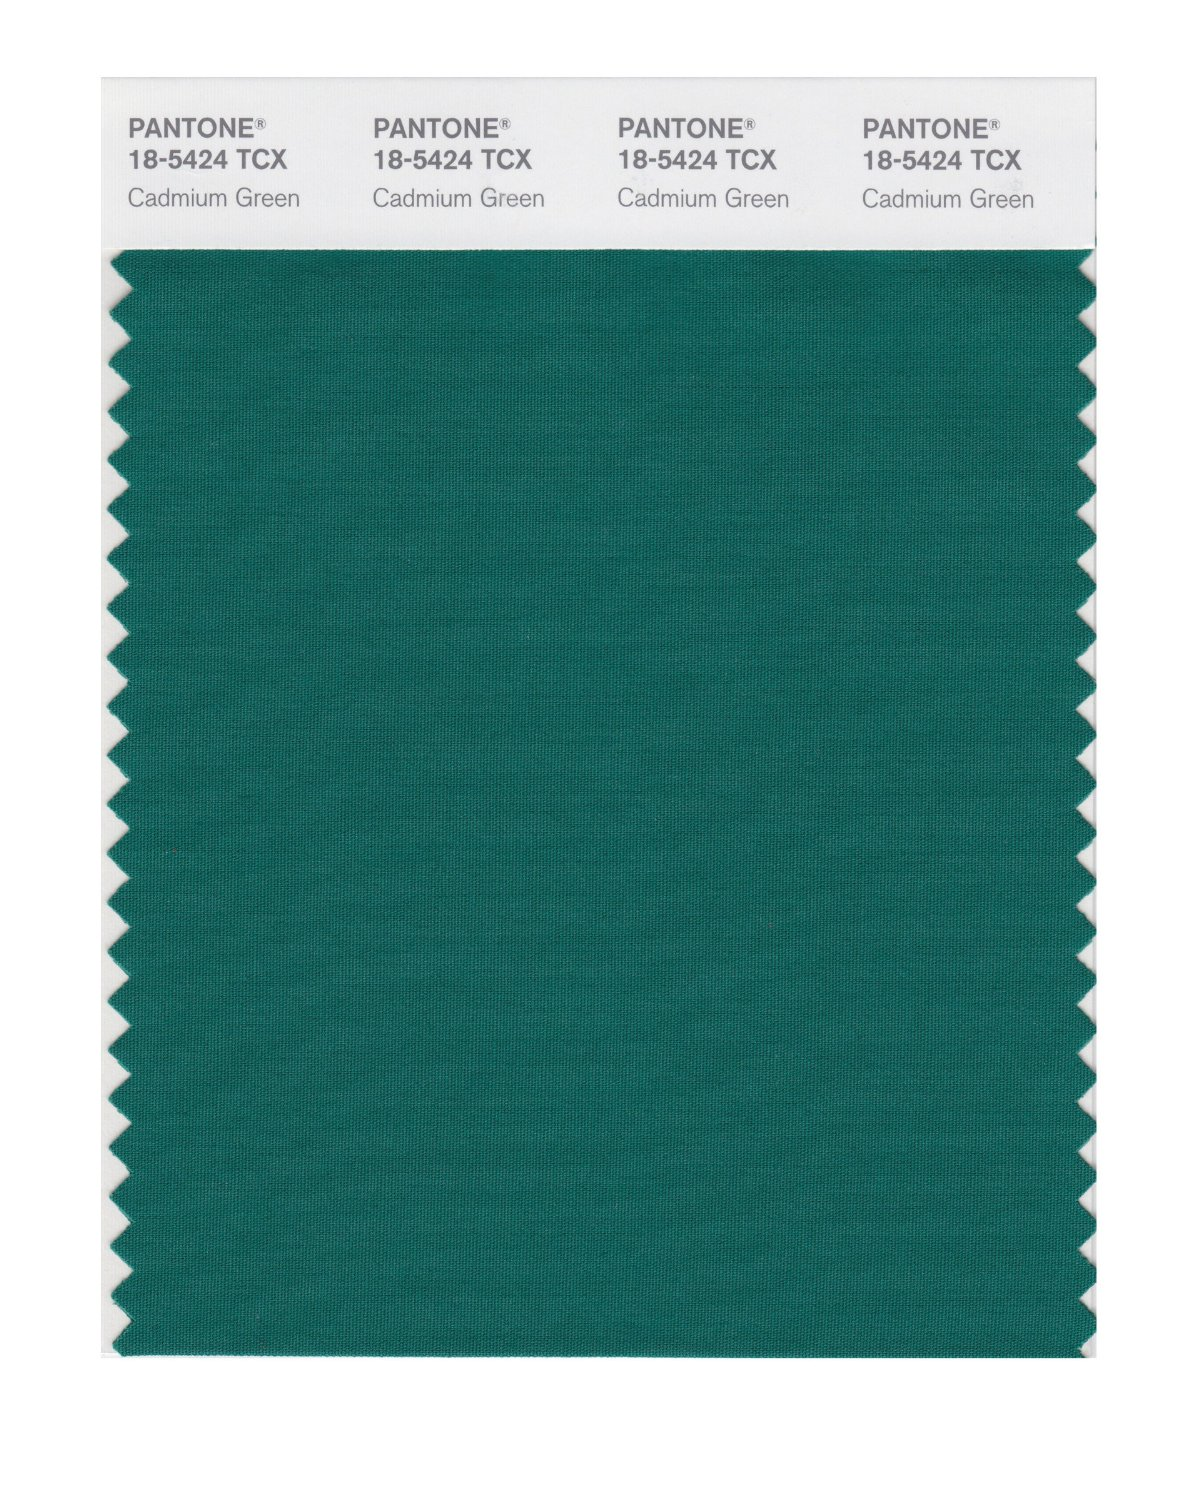 Pantone Smart Swatch 18-5424 Cadmium Green